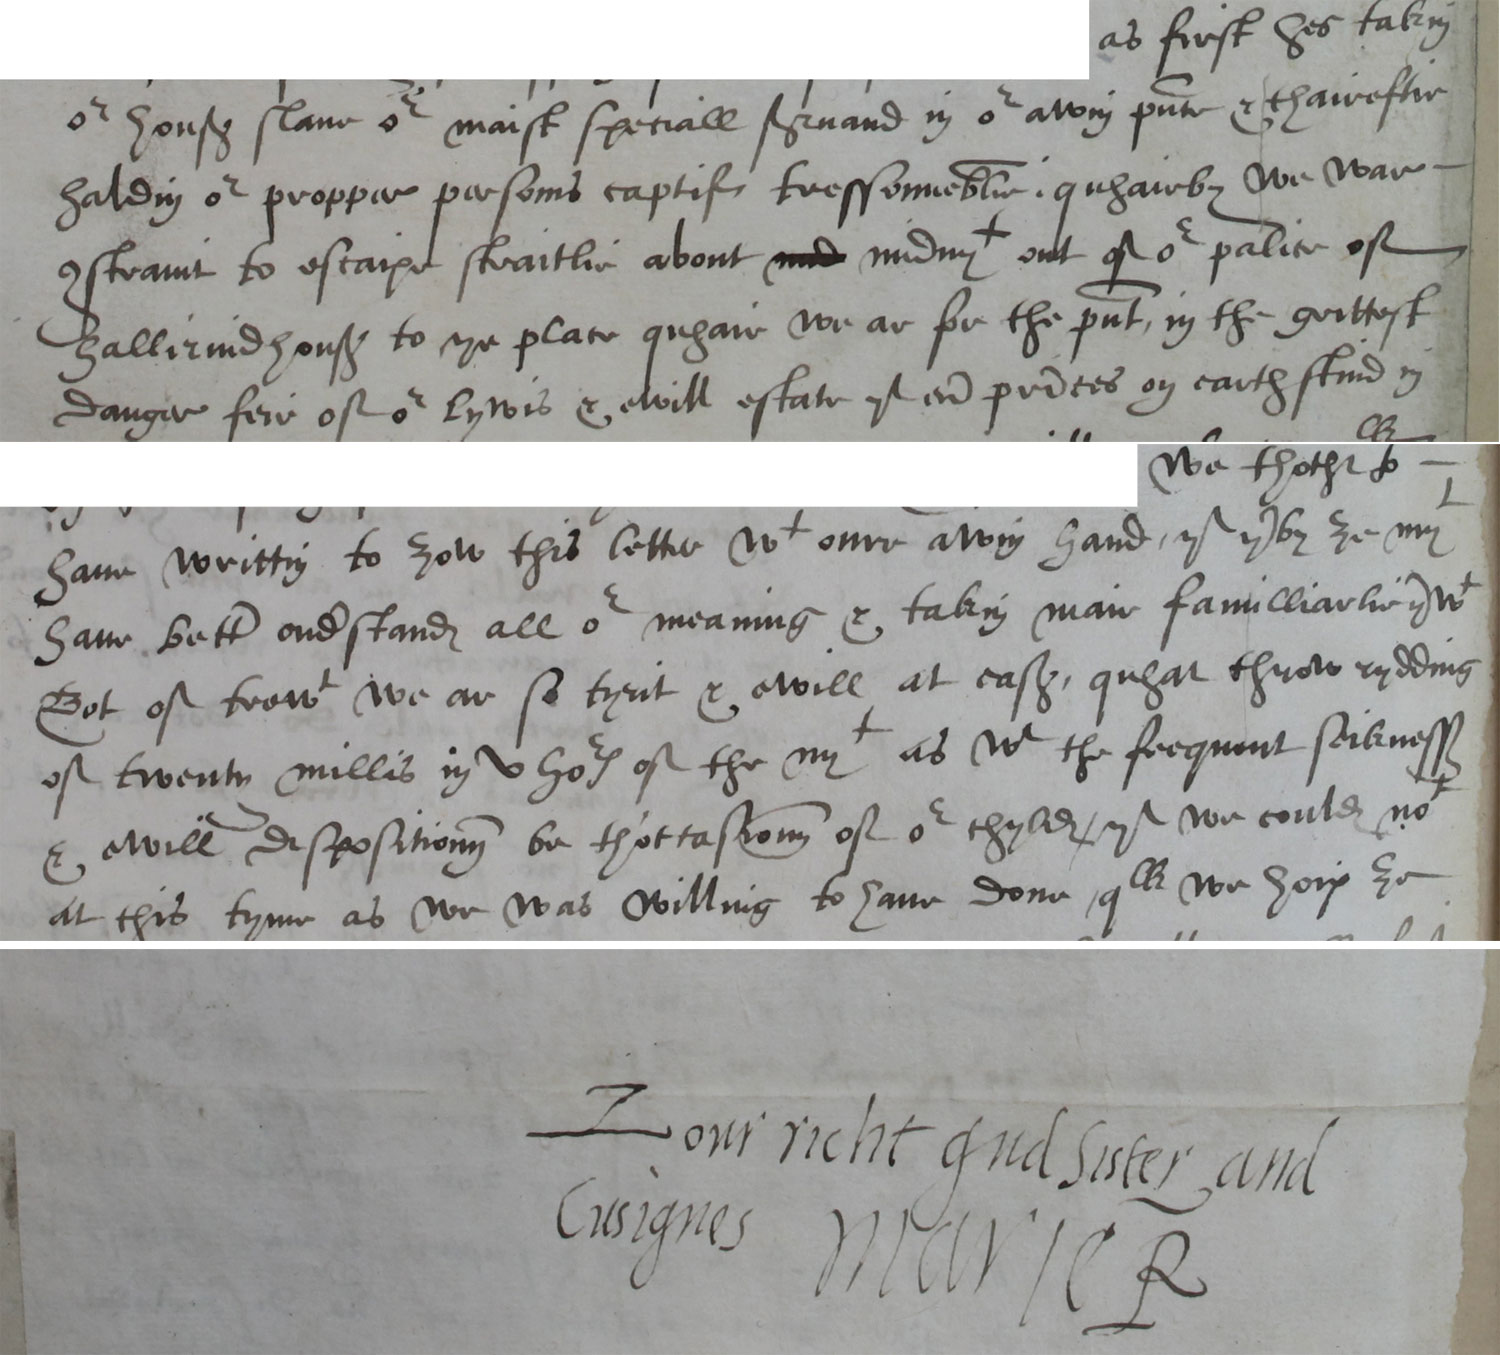 Letter dictated by Mary Queen of Scots to Elizabeth, 15 March 1566 (SP 52/12 f77v)